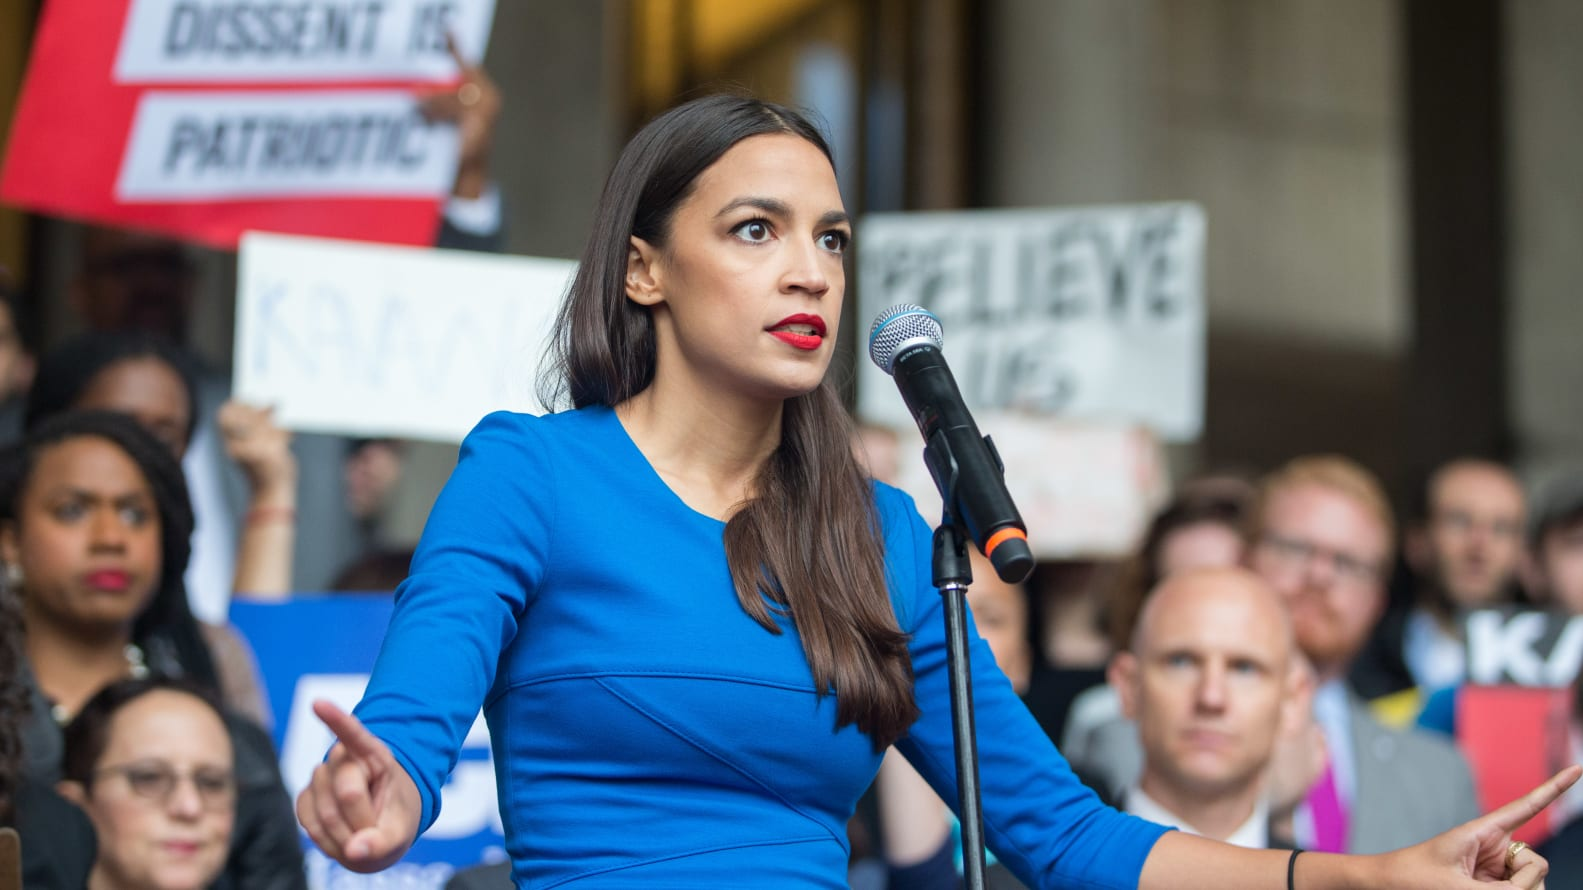 BOSTON, MA - OCTOBER 01:  New York Democratic congressional candidate Alexandria Ocasio-Cortez speaks at a rally calling on Sen. Jeff Flake (R-AZ) to reject Judge Brett Kavanaugh's nomination to the Supreme Court on October 1, 2018 in Boston, Massachusetts. Sen. Flake is scheduled to give a talk at the Forbes 30 under 30 event in Boston after recently calling for a one week pause in the confirmation process to give the FBI more time to investigate sexual assault allegations.  (Photo by Scott Eisen/Getty Images)